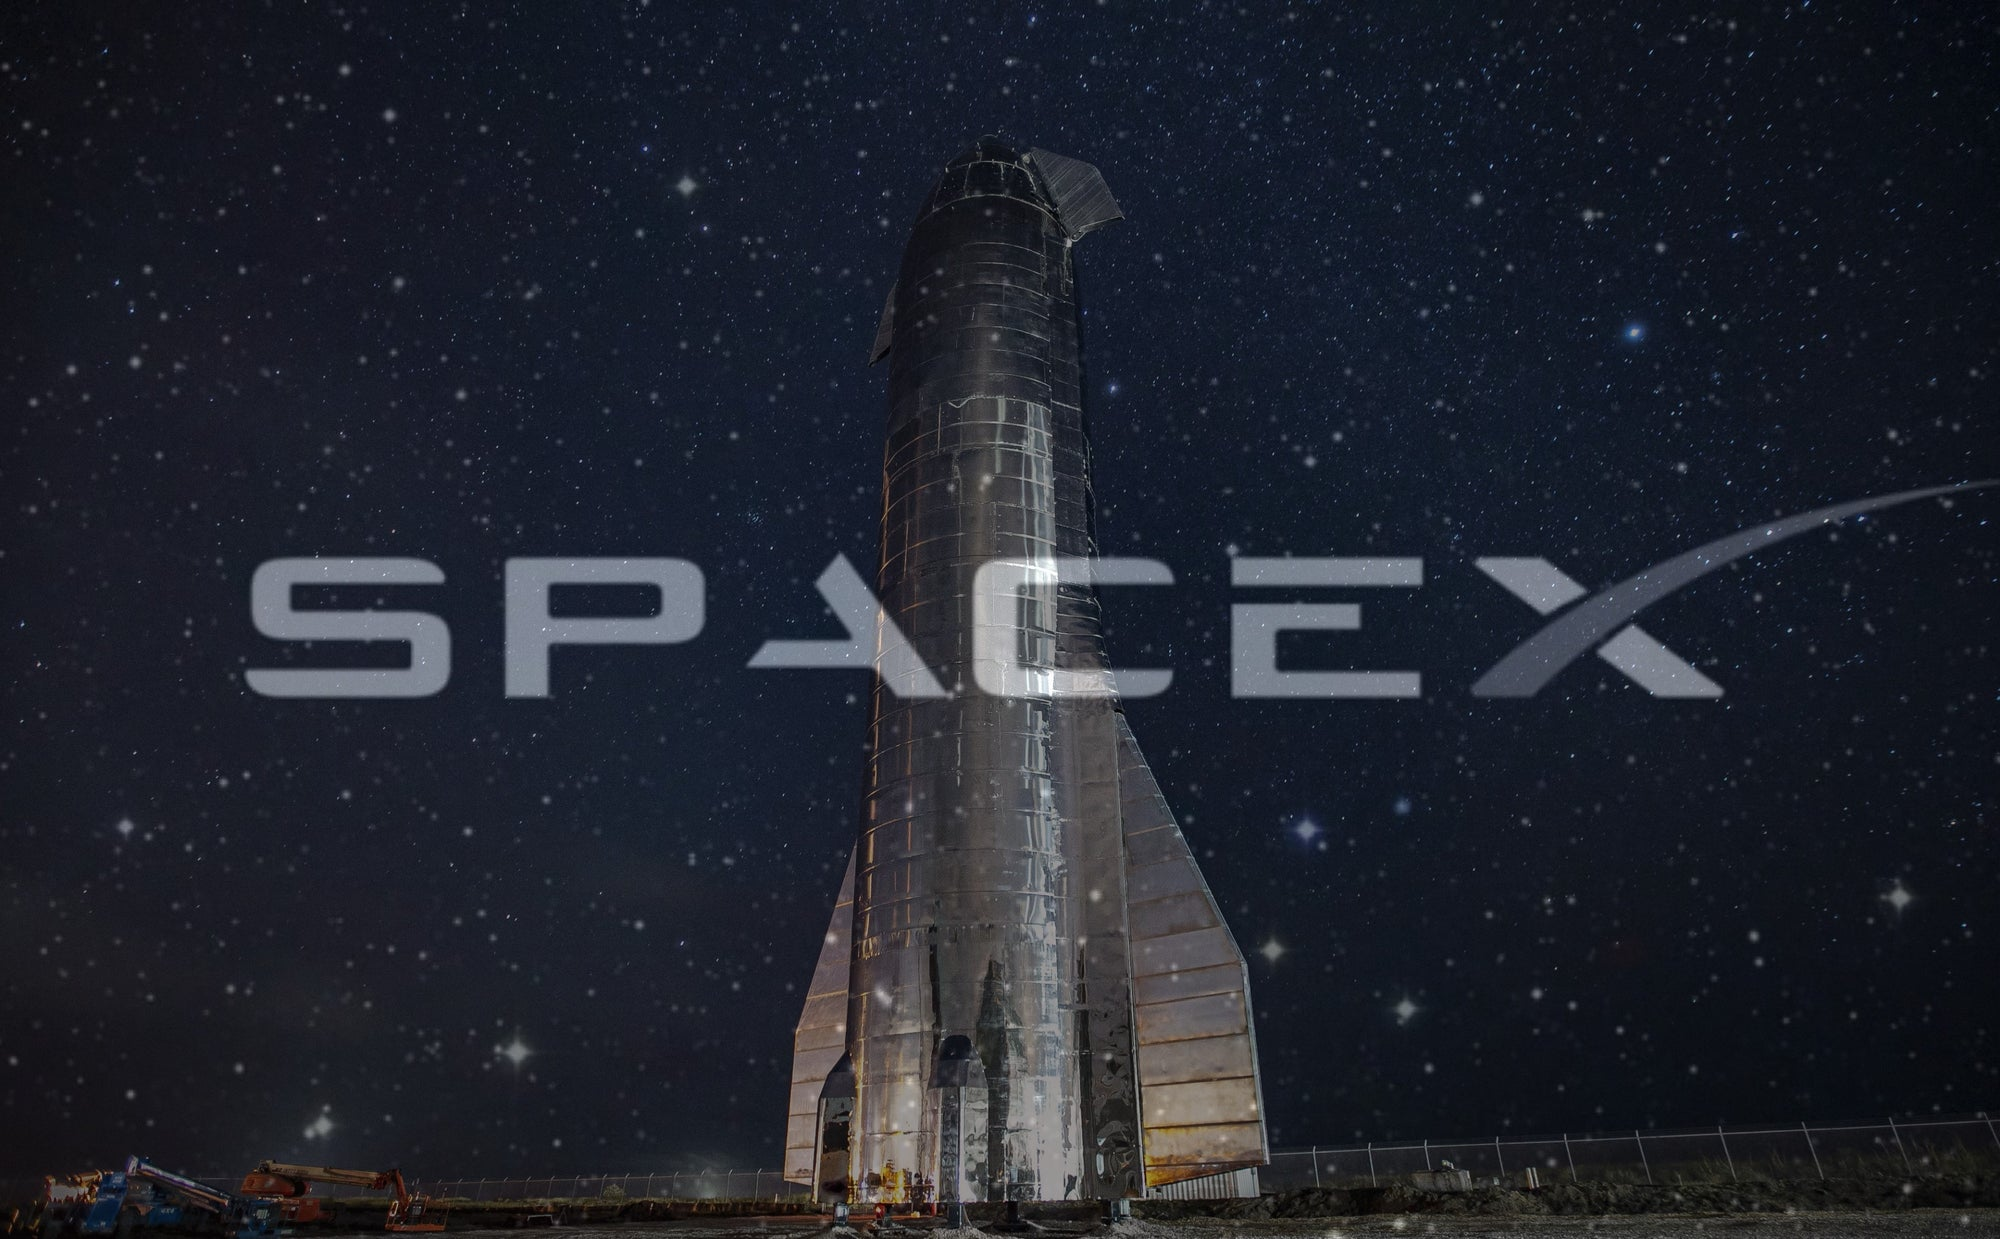 Elon Musk shared that SpaceX is now building the flight design version of Starship